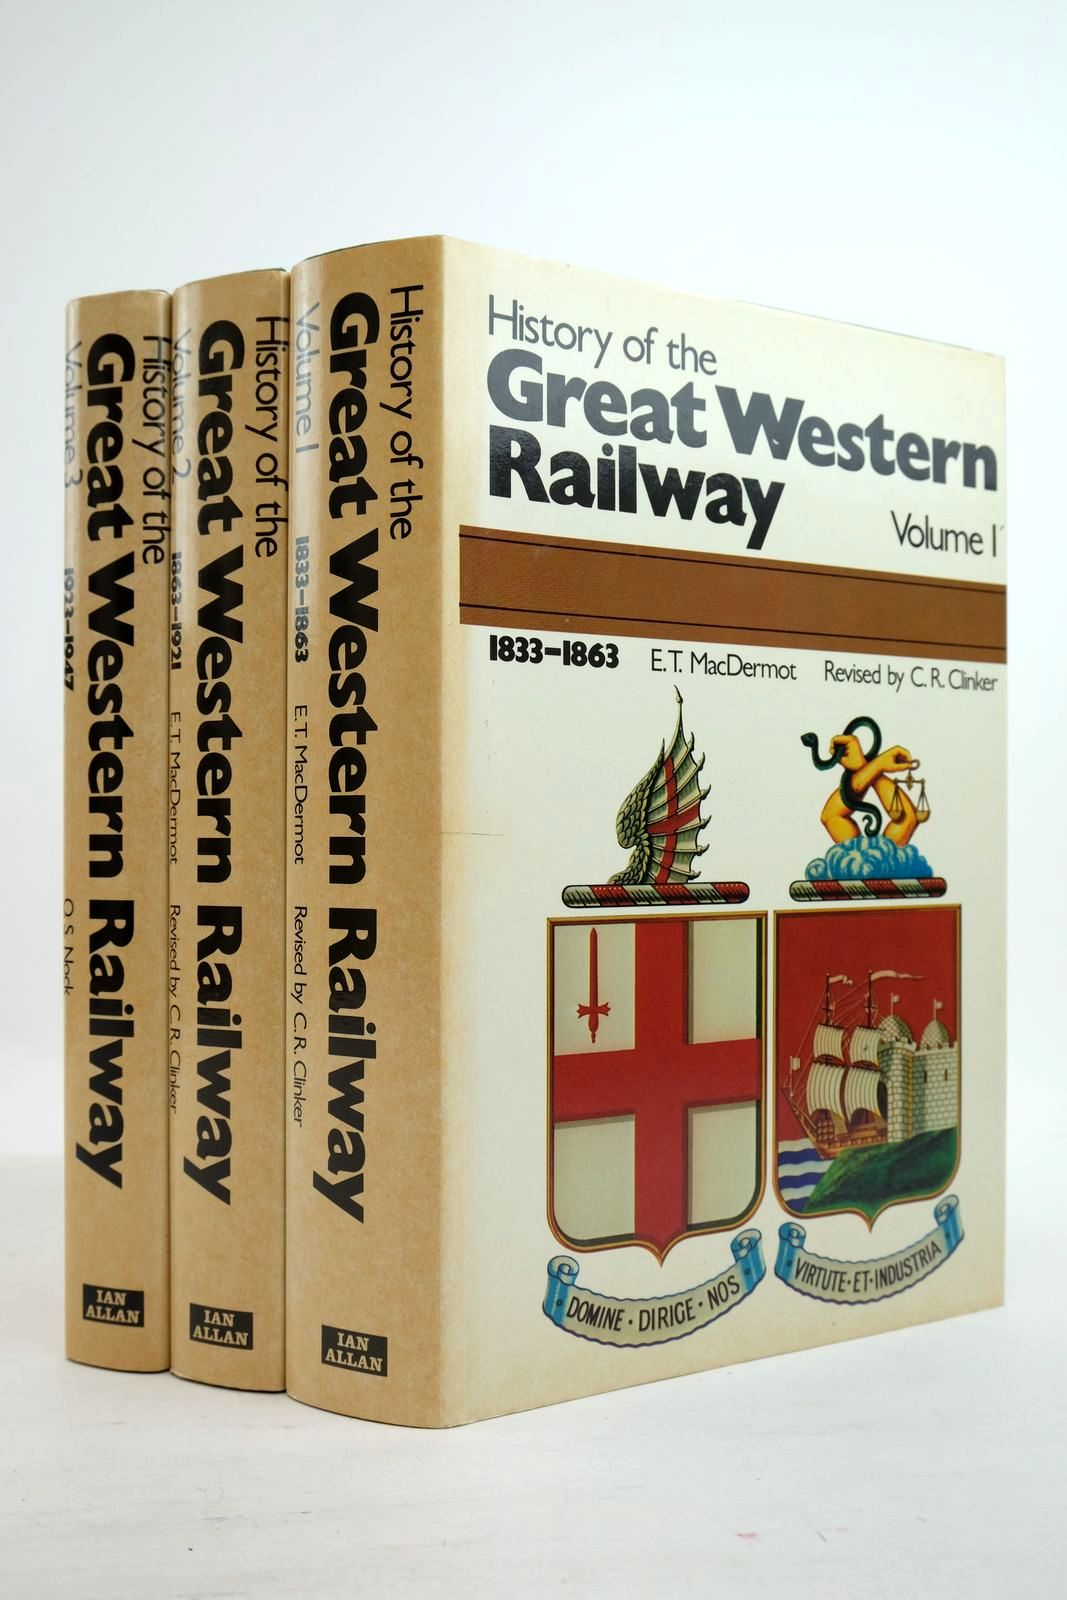 History of The Great Western Railway (3 Volumes)